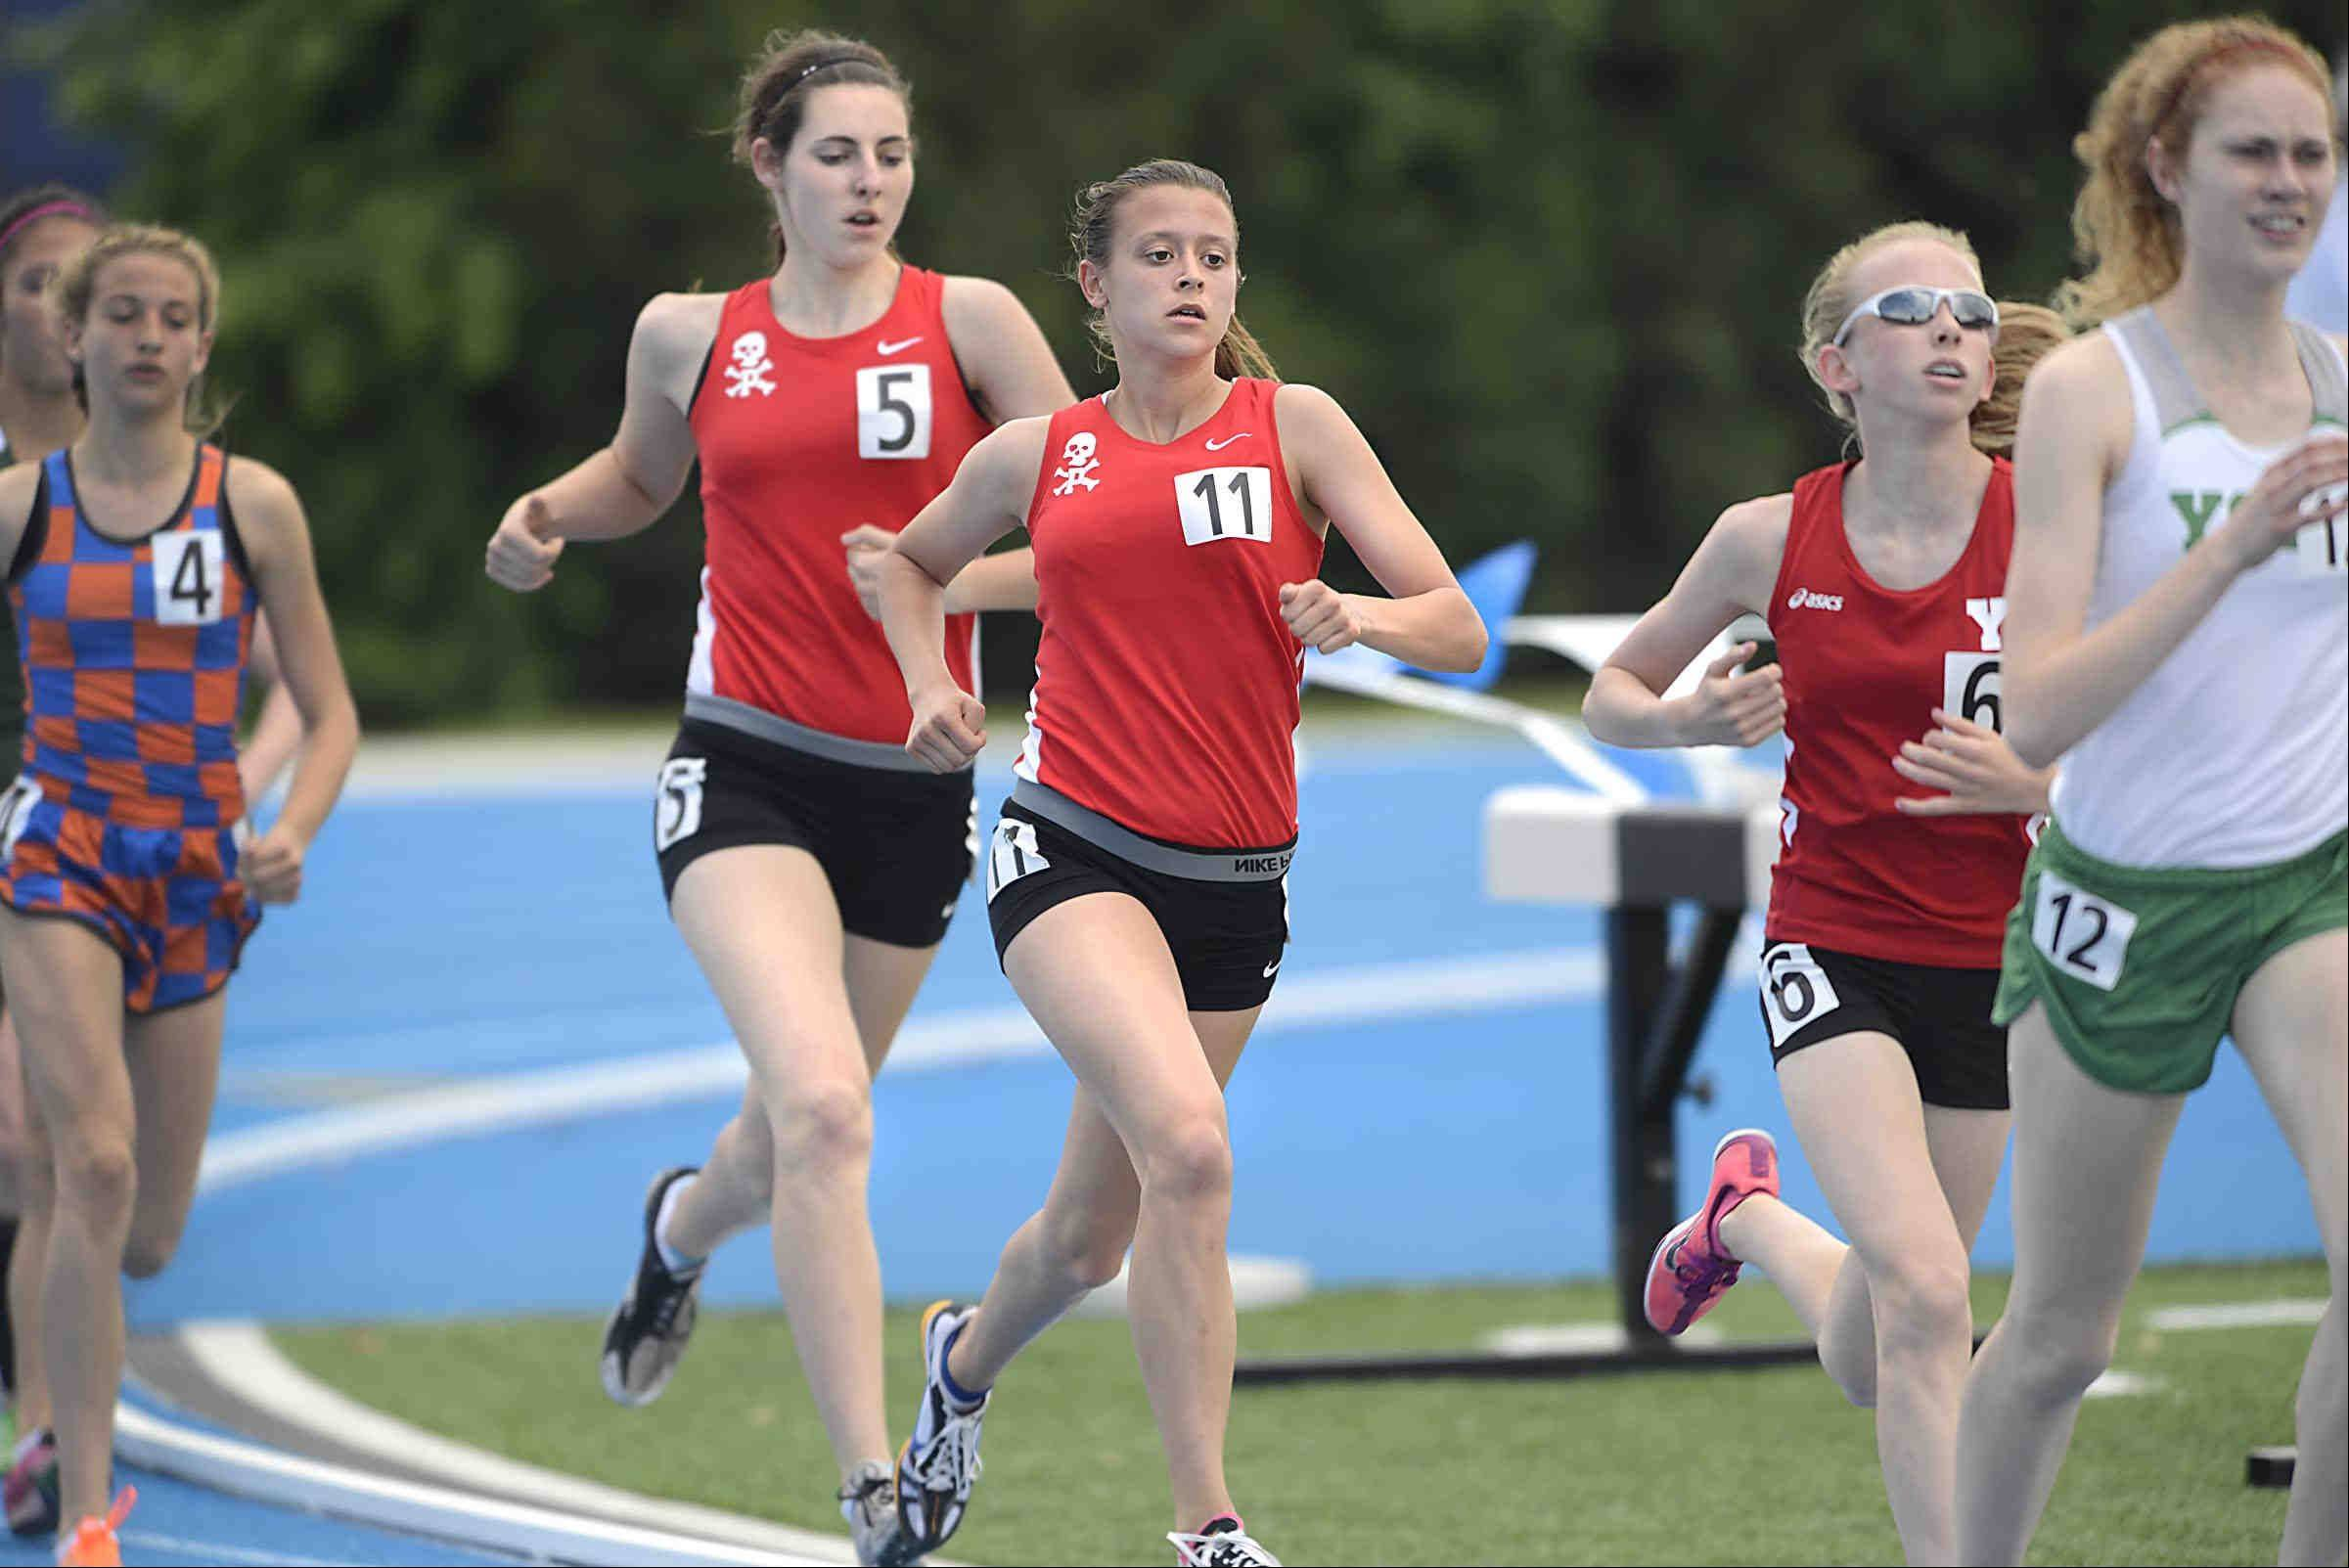 Palatine's Tess Wasowicz and teammate Liz Cox run together in their heat of the 1,600 meter run Friday in the Class 3A girls state track and field preliminaries at Eastern Illinois University.